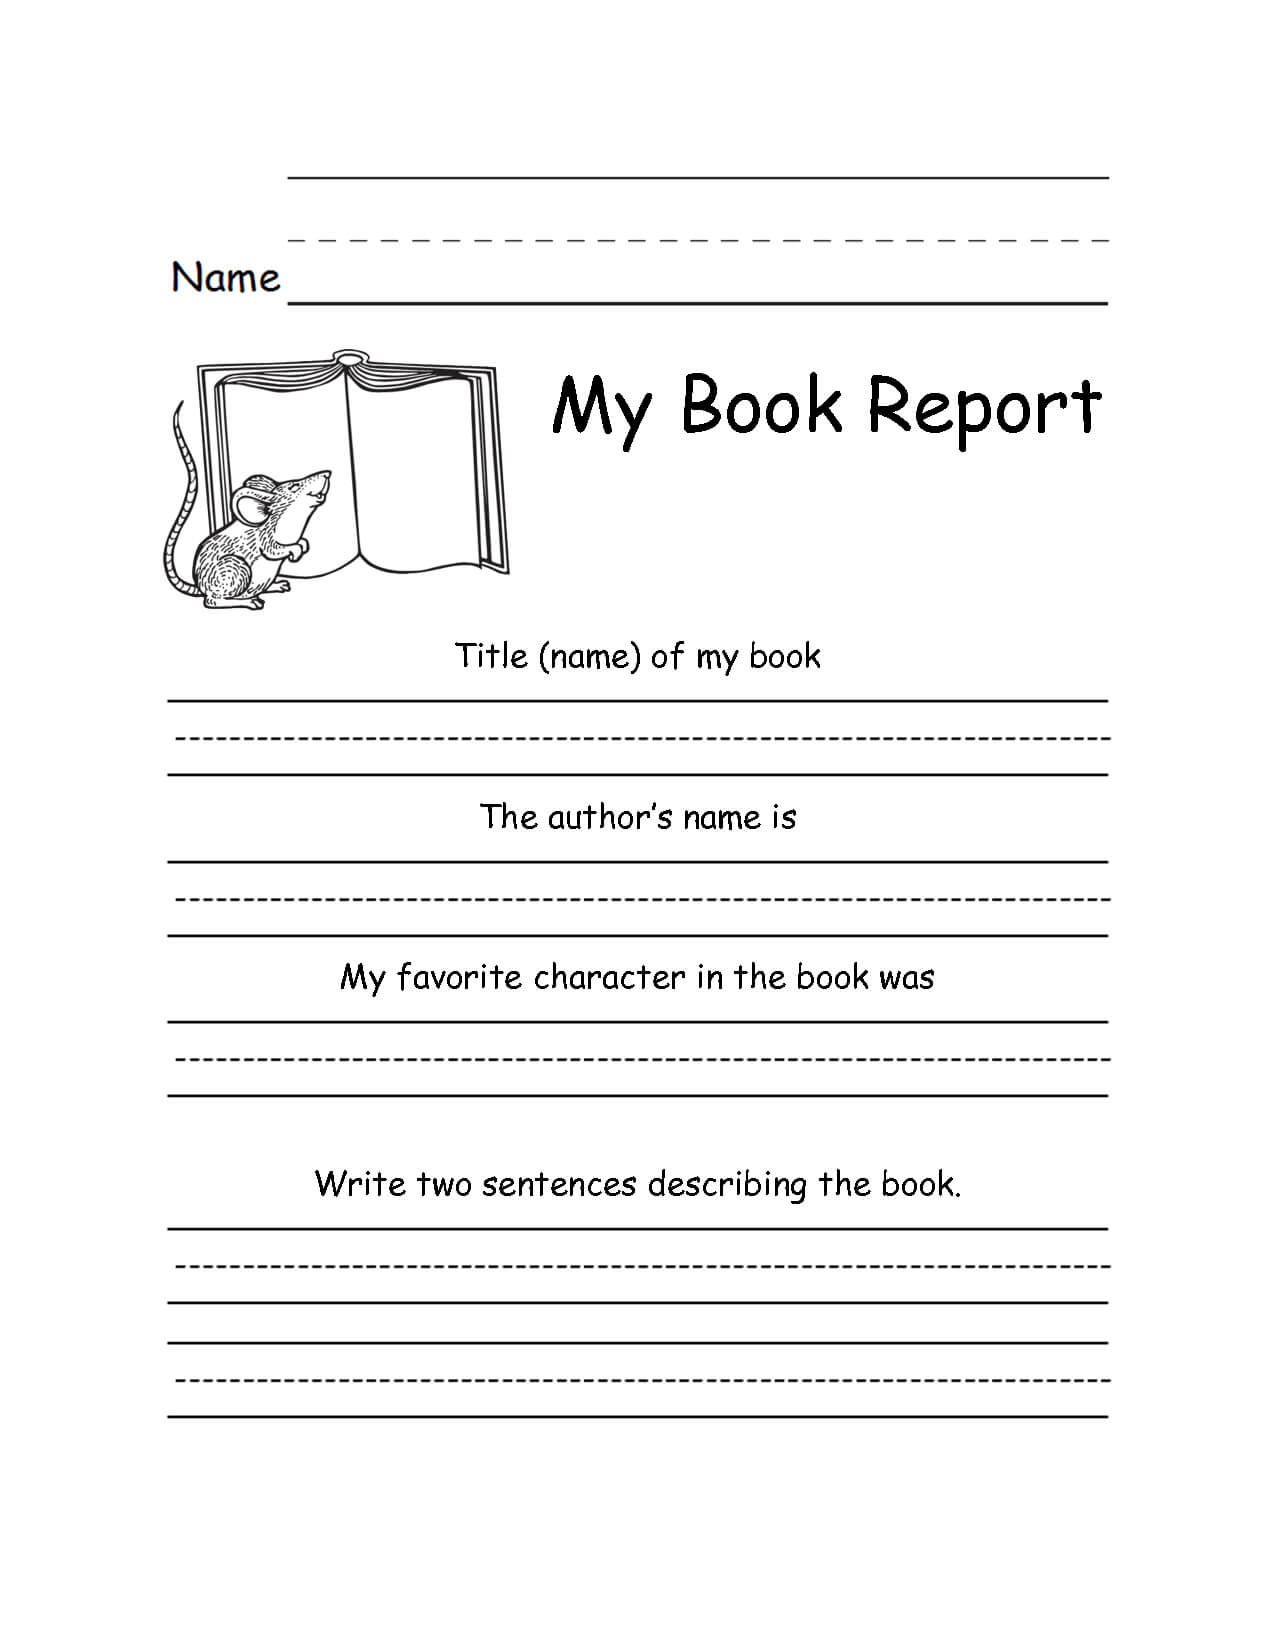 1St Grade Book Report Template - Atlantaauctionco With Regard To 1St Grade Book Report Template